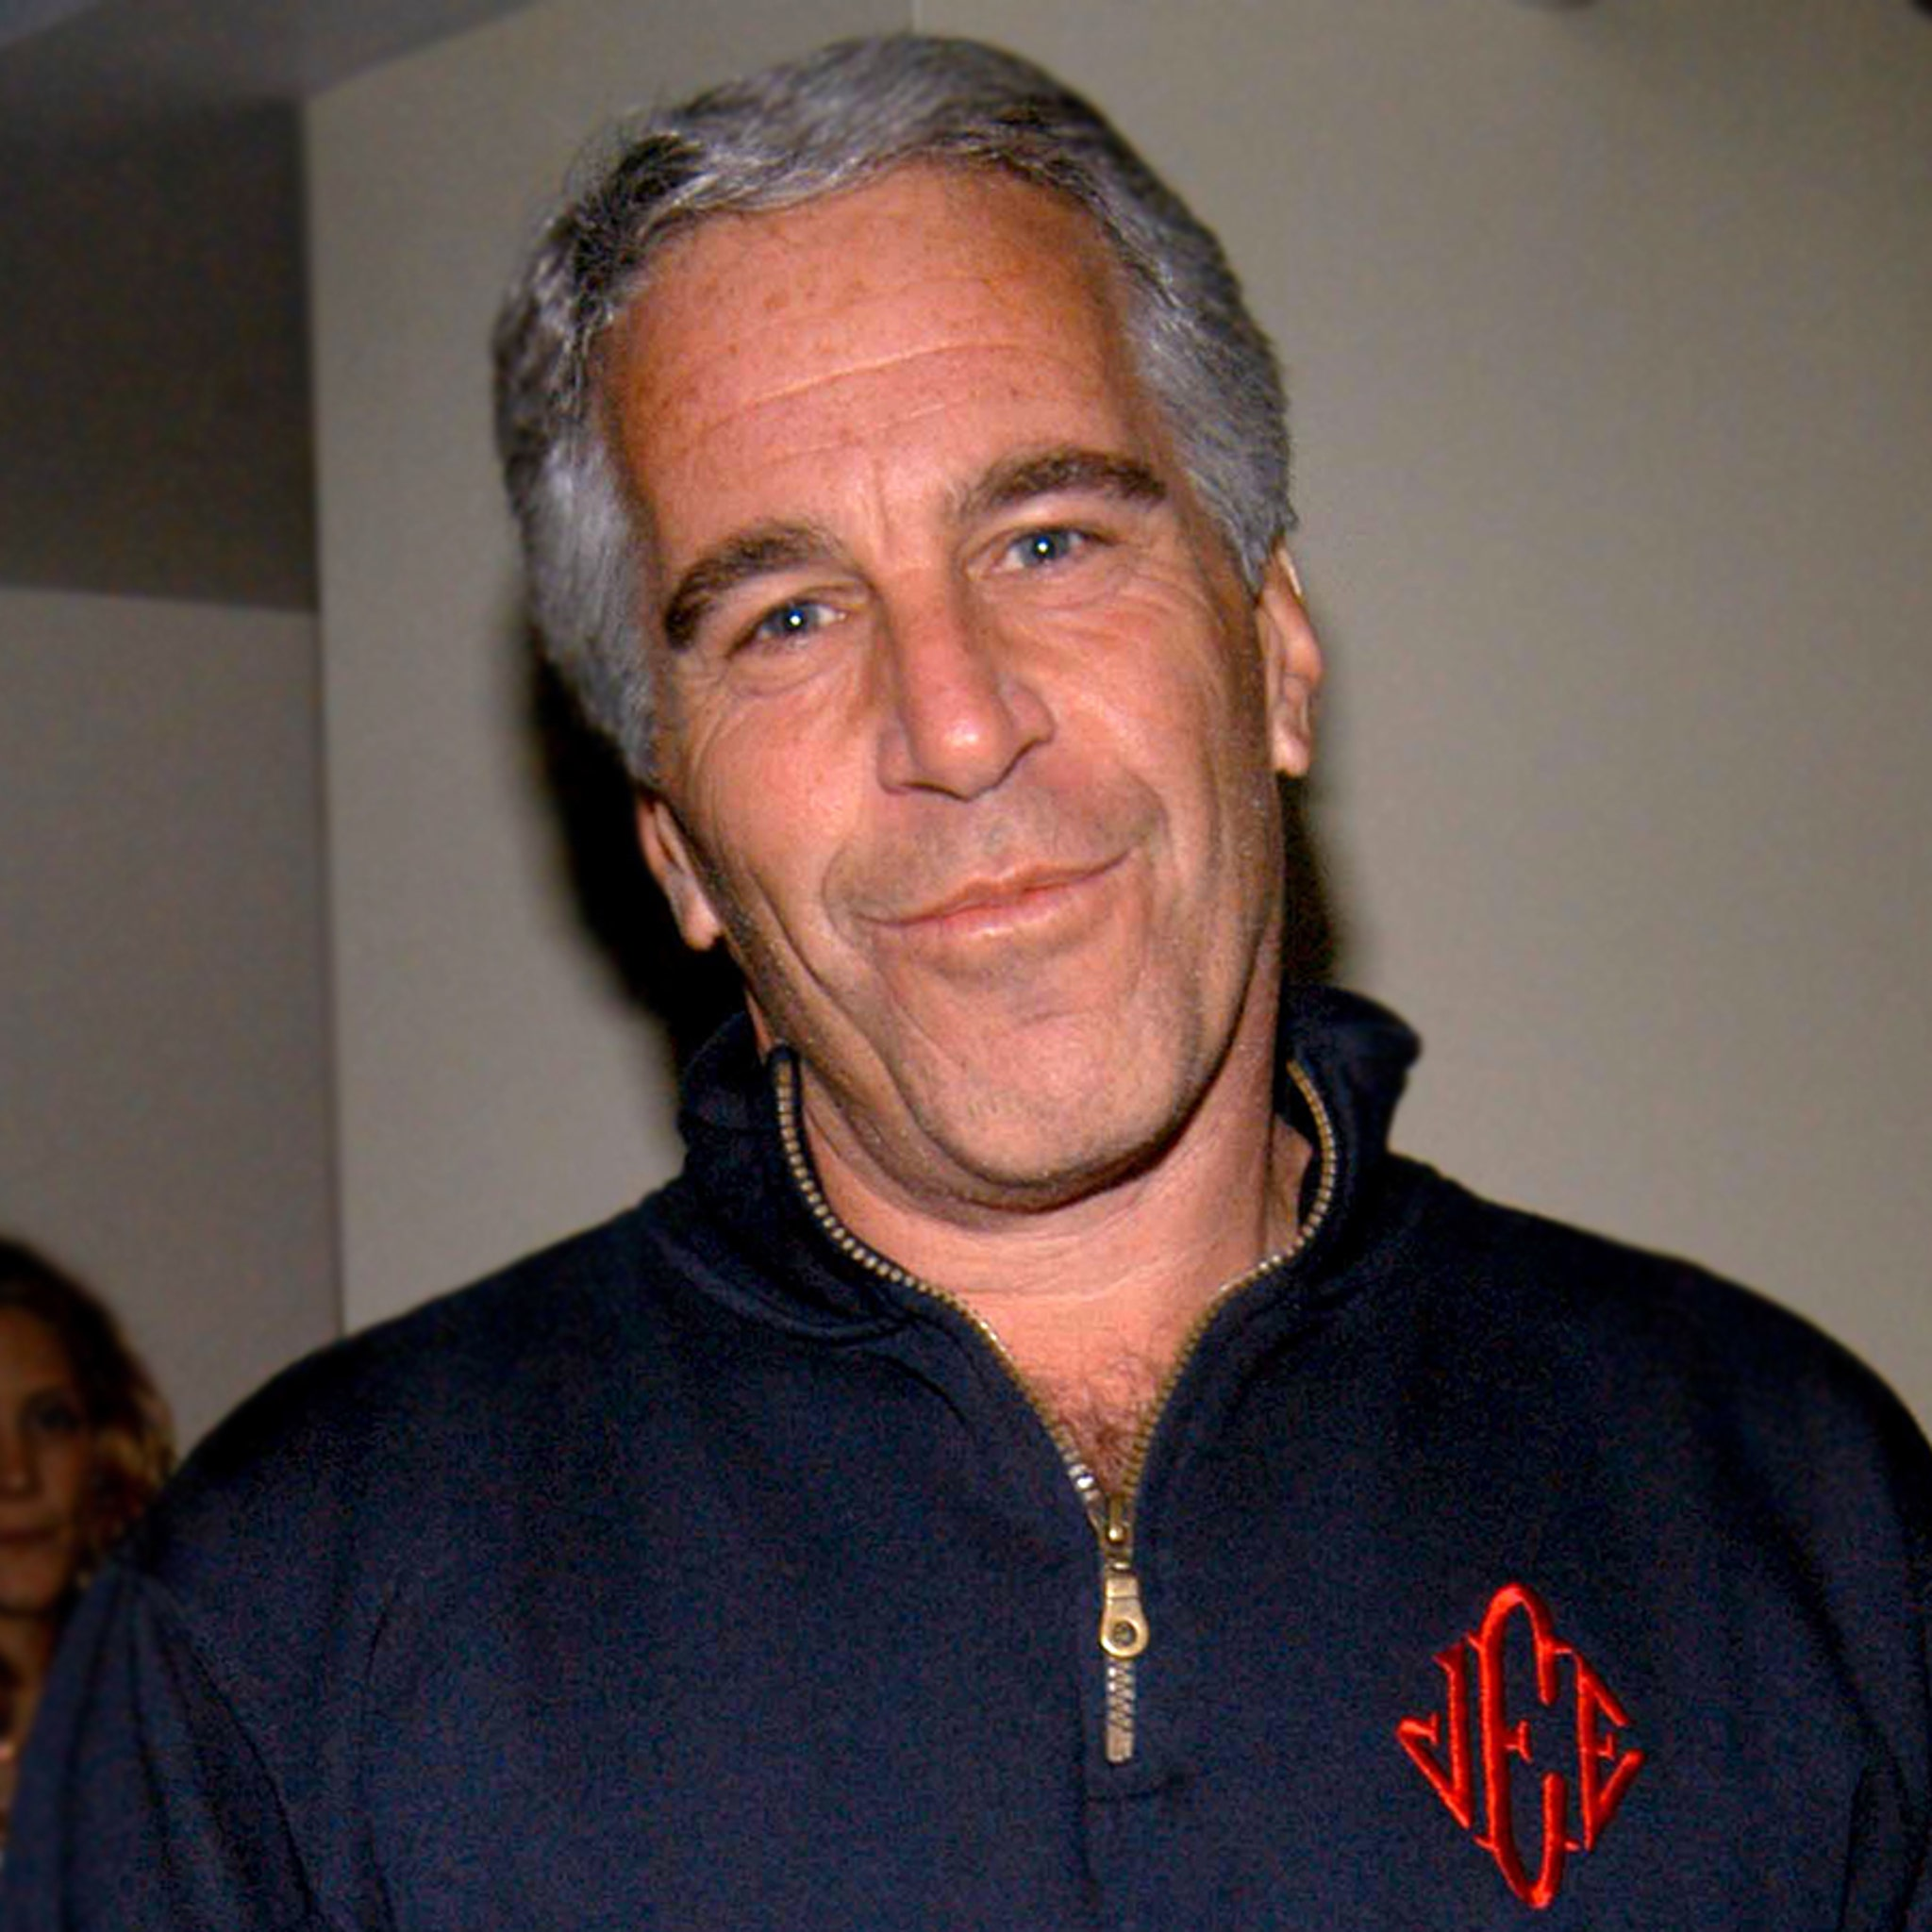 Jeffrey Epstein Autopsy Reveals Injuries That Could be Caused by Hanging or Strangulation